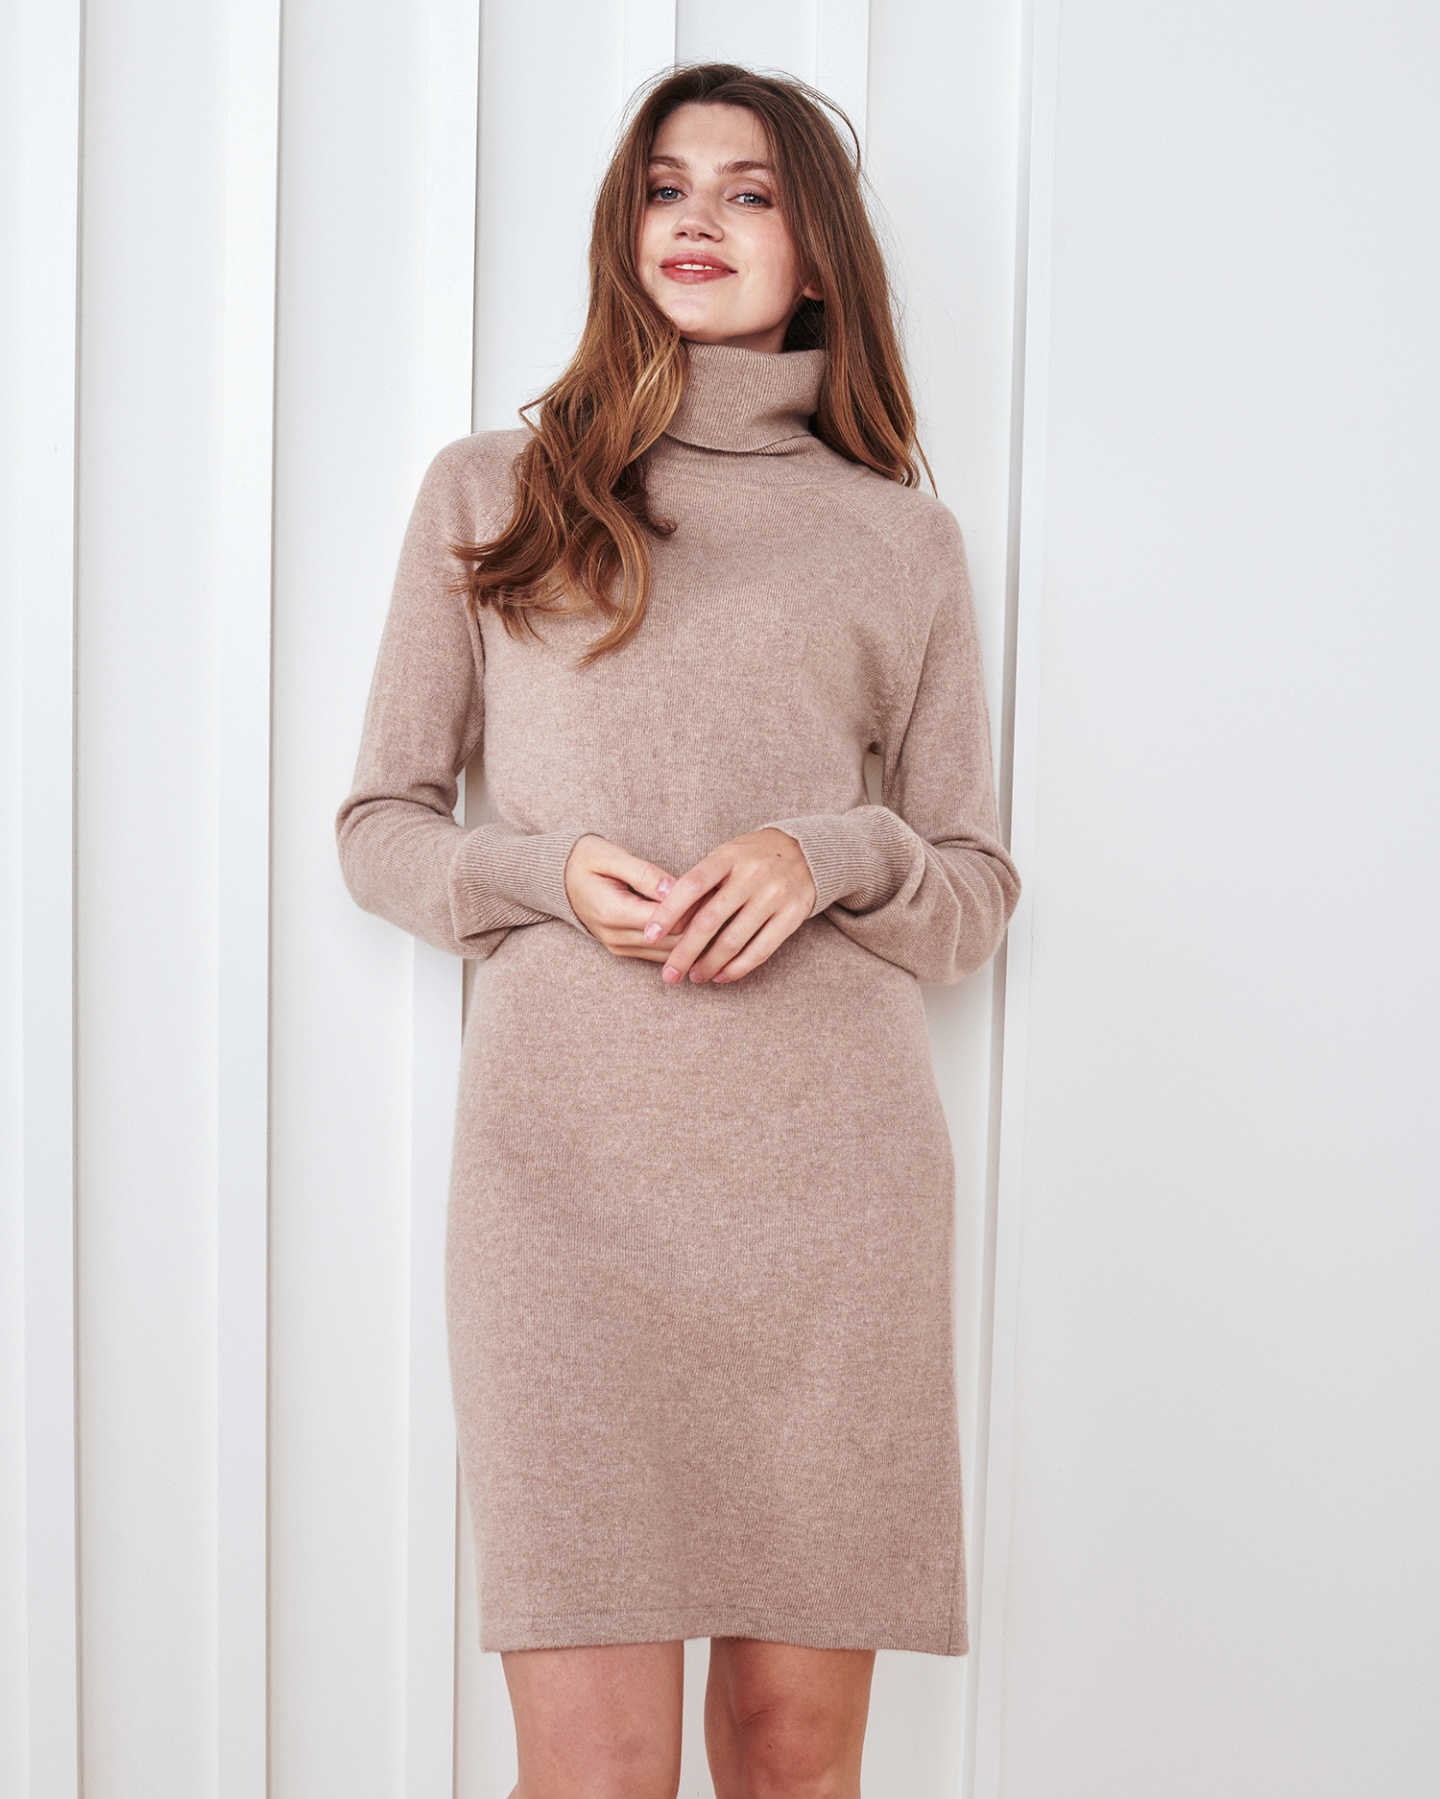 You May Also Like - Mongolian Cashmere Turtleneck Dress - Oatmeal